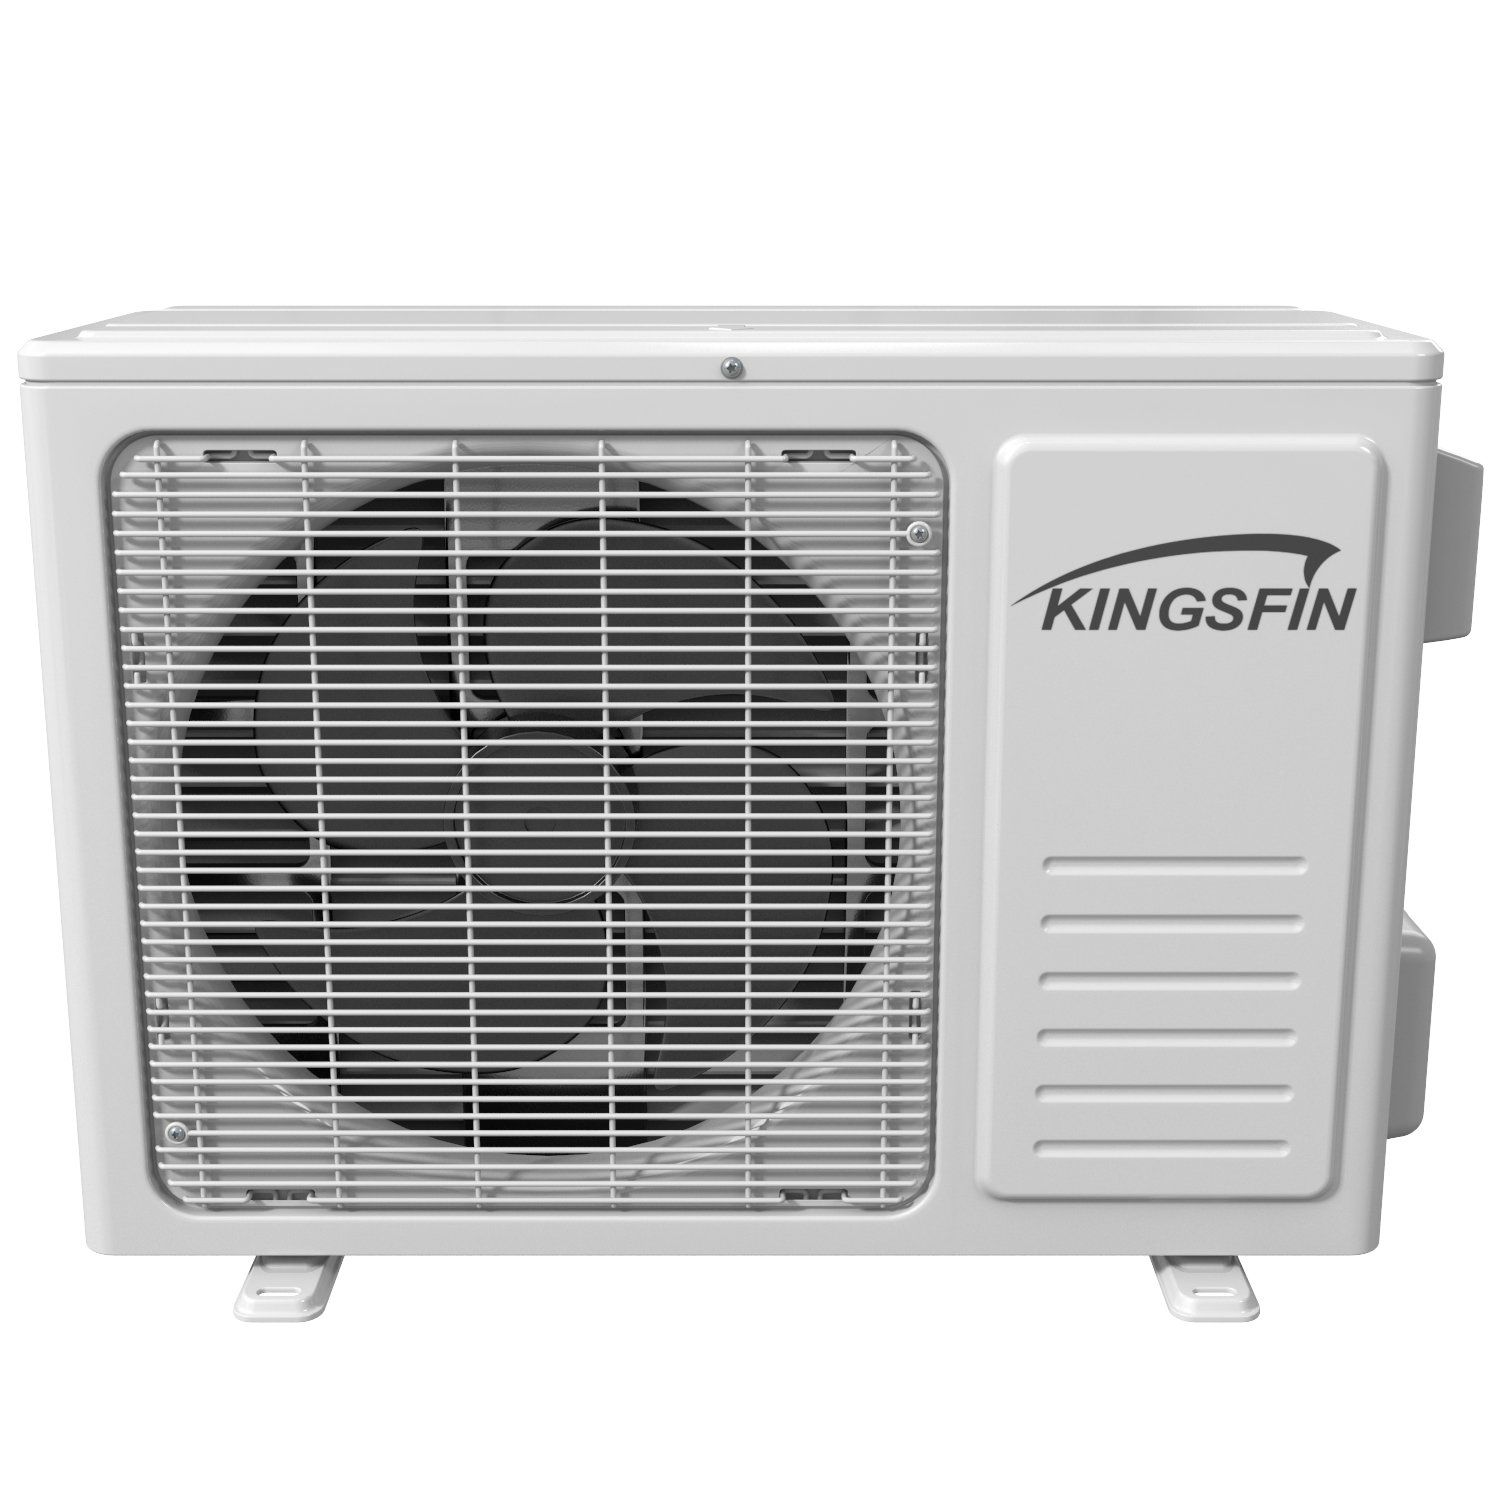 Kingsfin Mini Split Ductless Ac Air Conditioner And Heat Pump 24000 Btu 230v 15 Seer Complete System 24000 Btu 230 Pool Floats Ductless Ac Usb Rechargeable